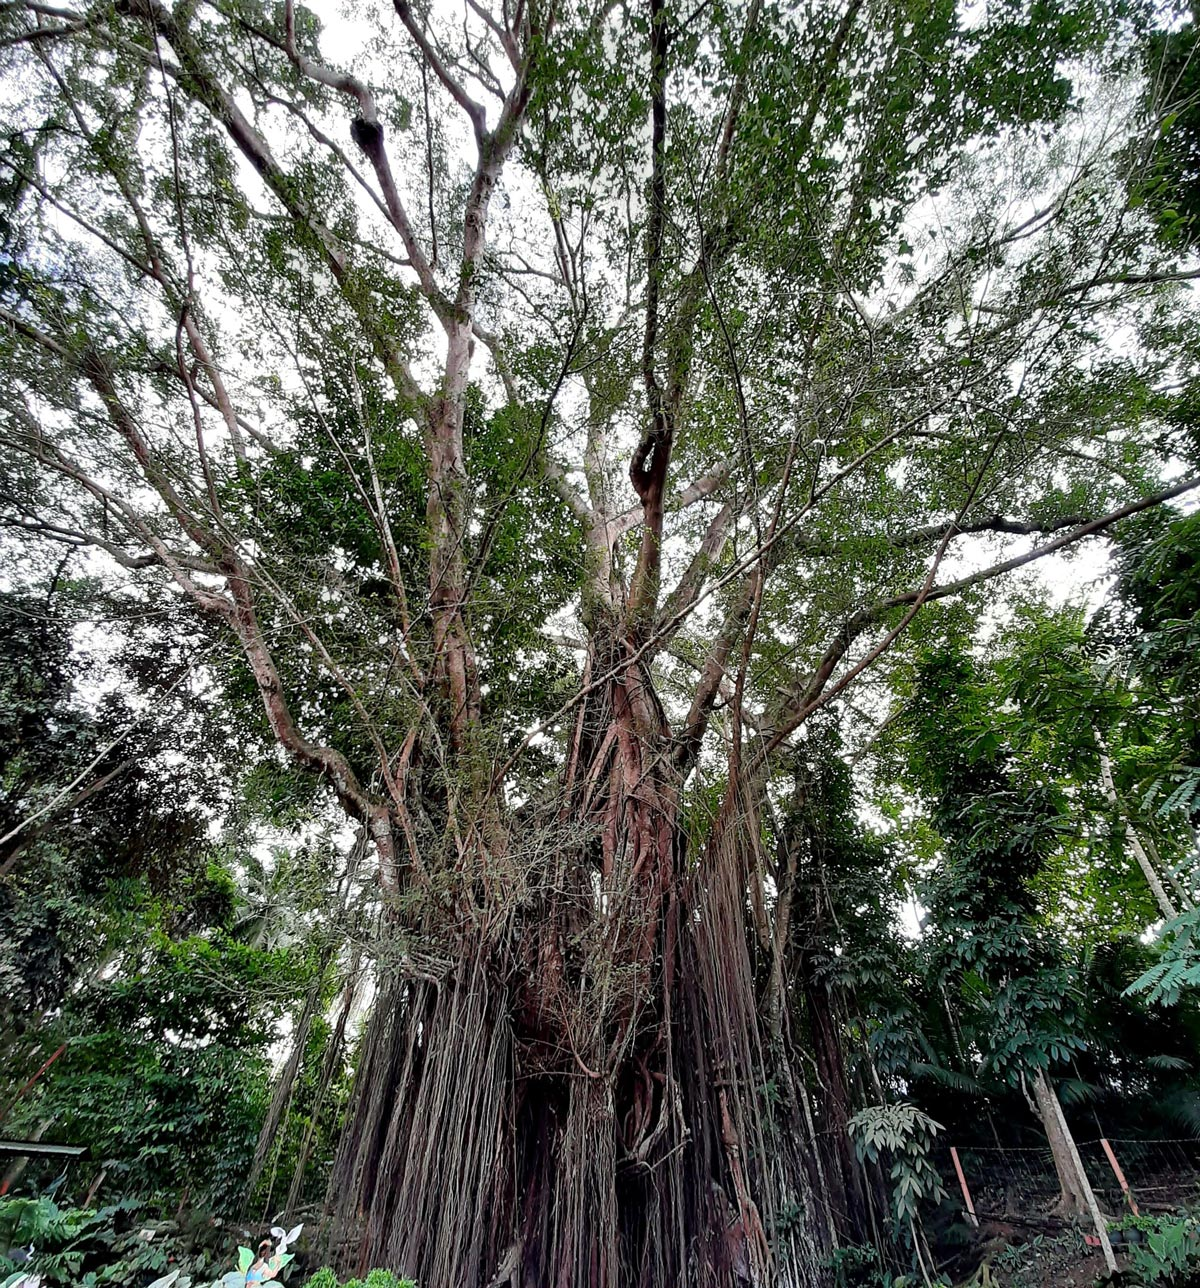 400 years old Balete Tree in Siquijor